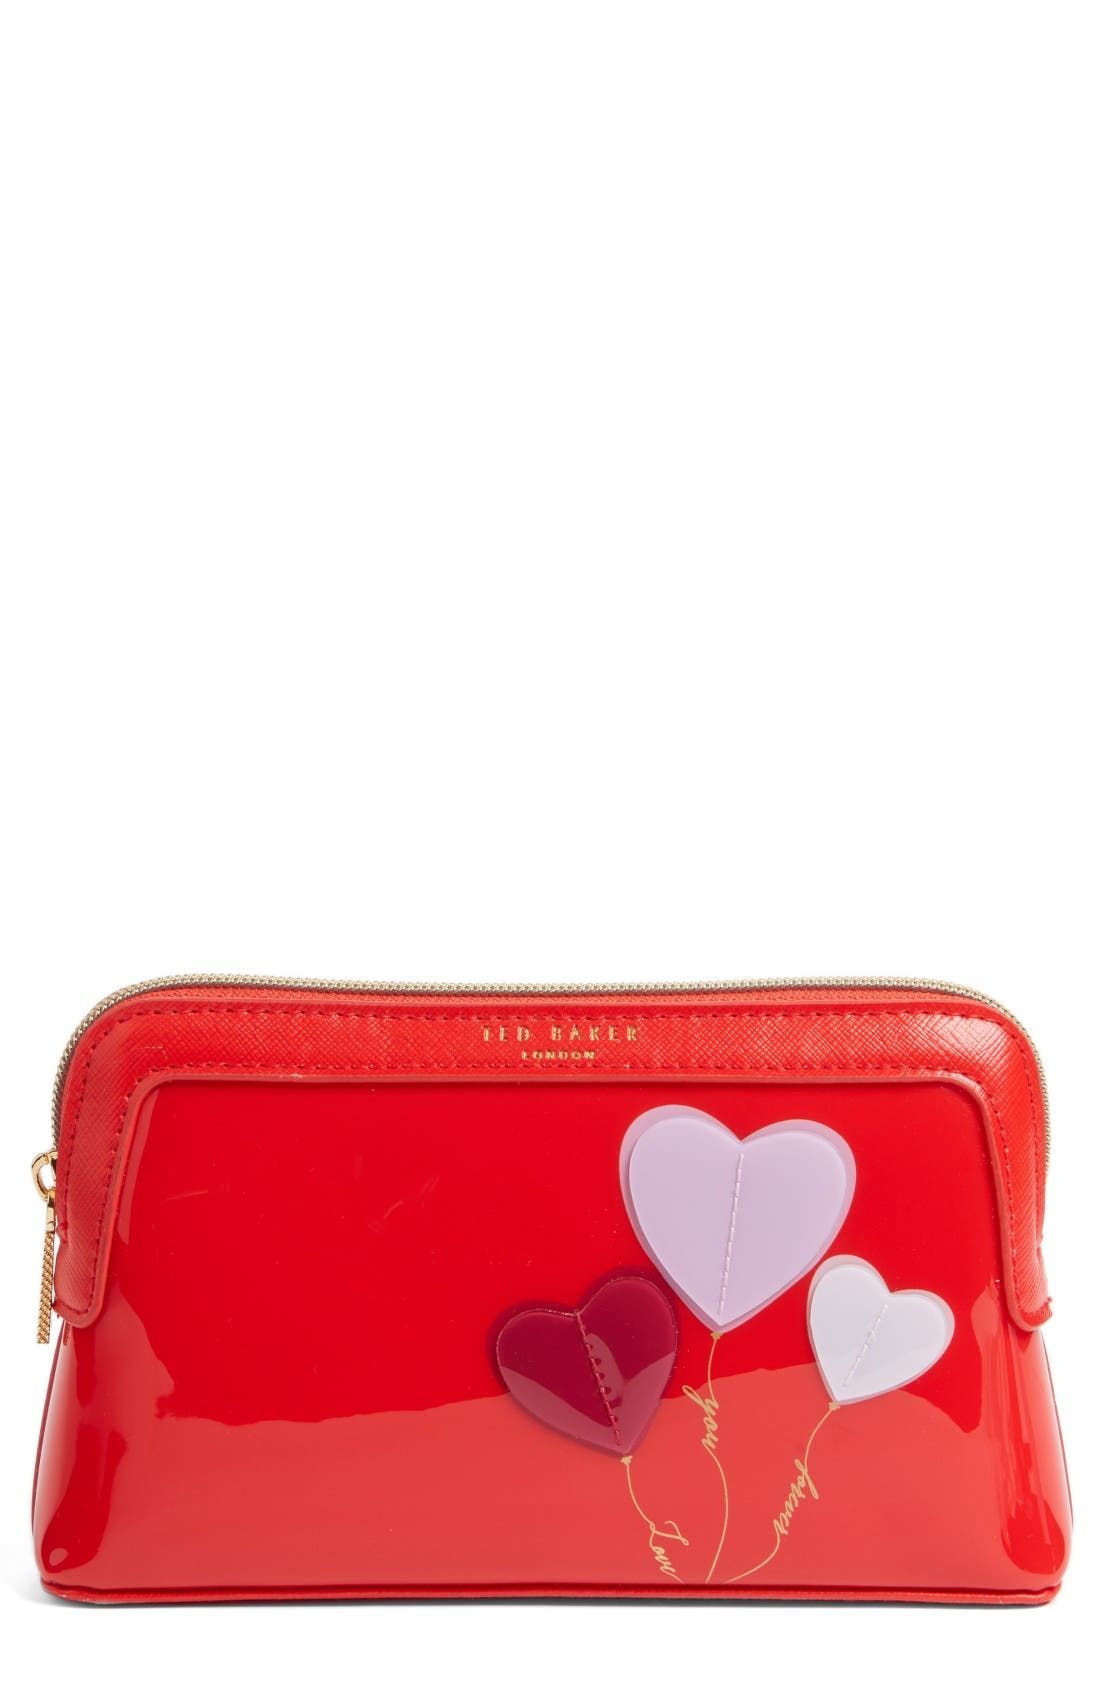 Alternate Image 1 Selected - Ted Baker London Heart Cosmetics Bag